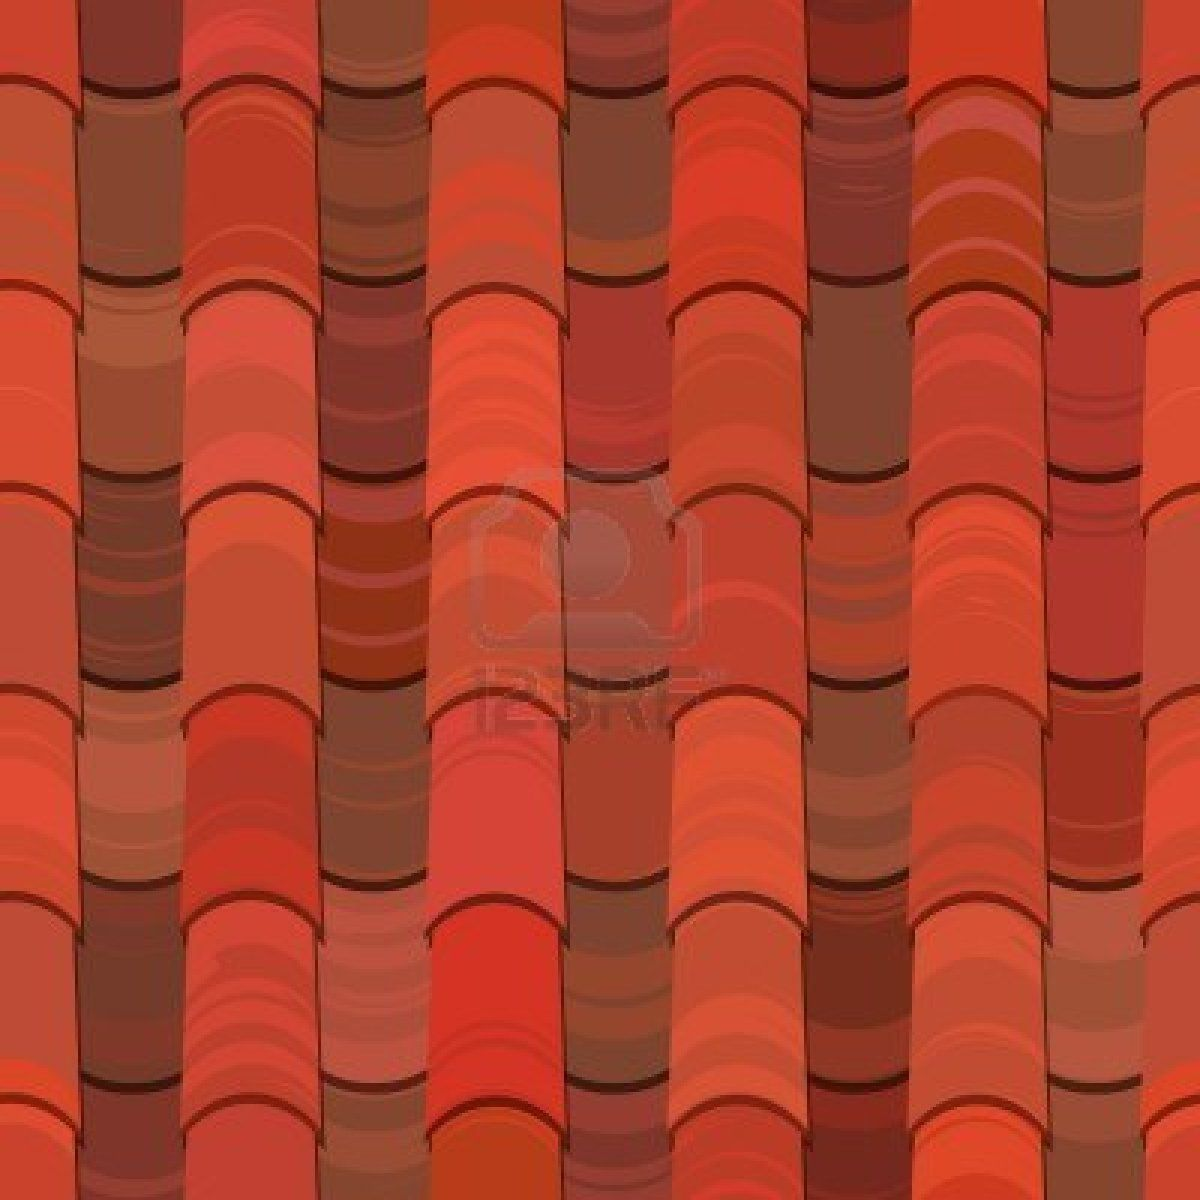 Red Clay Ceramic Roof Tiles Seamless Texture Ceramic Roof Tiles Red Clay Clay Roof Tiles